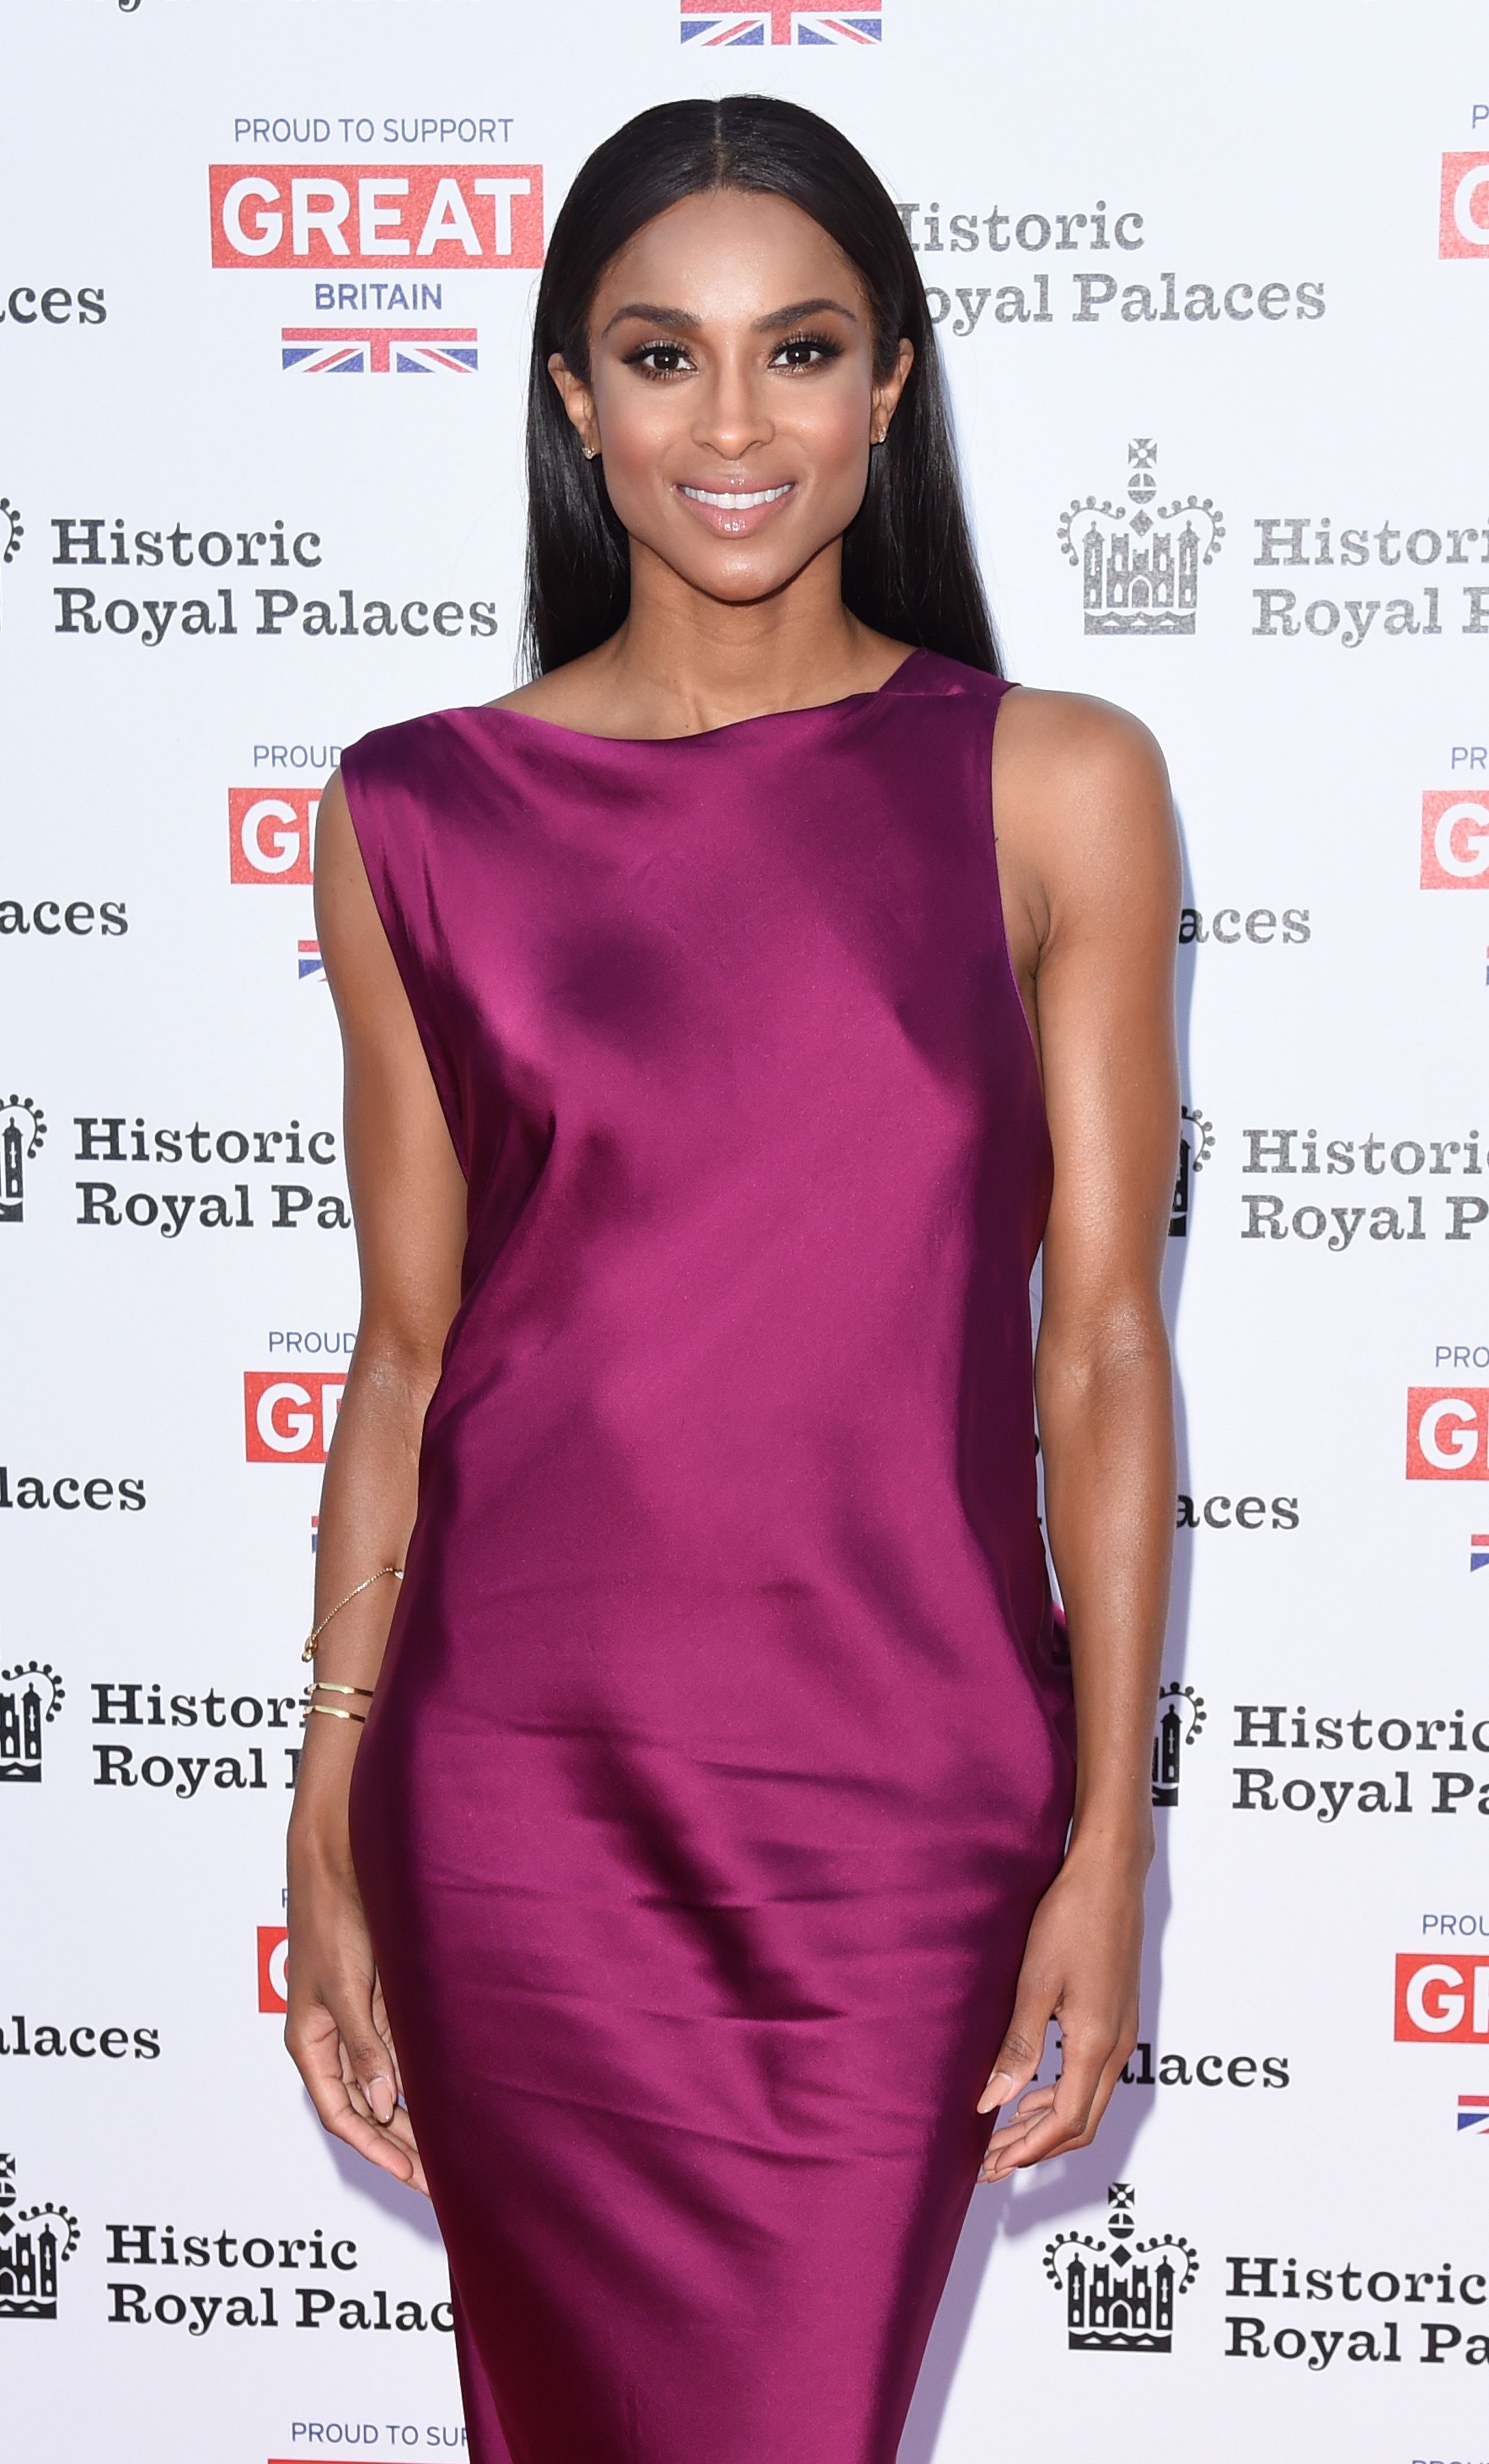 Ciara at the Kensington Palace Summer Gala  in London on July 9, 2015.   Photo: Getty Images